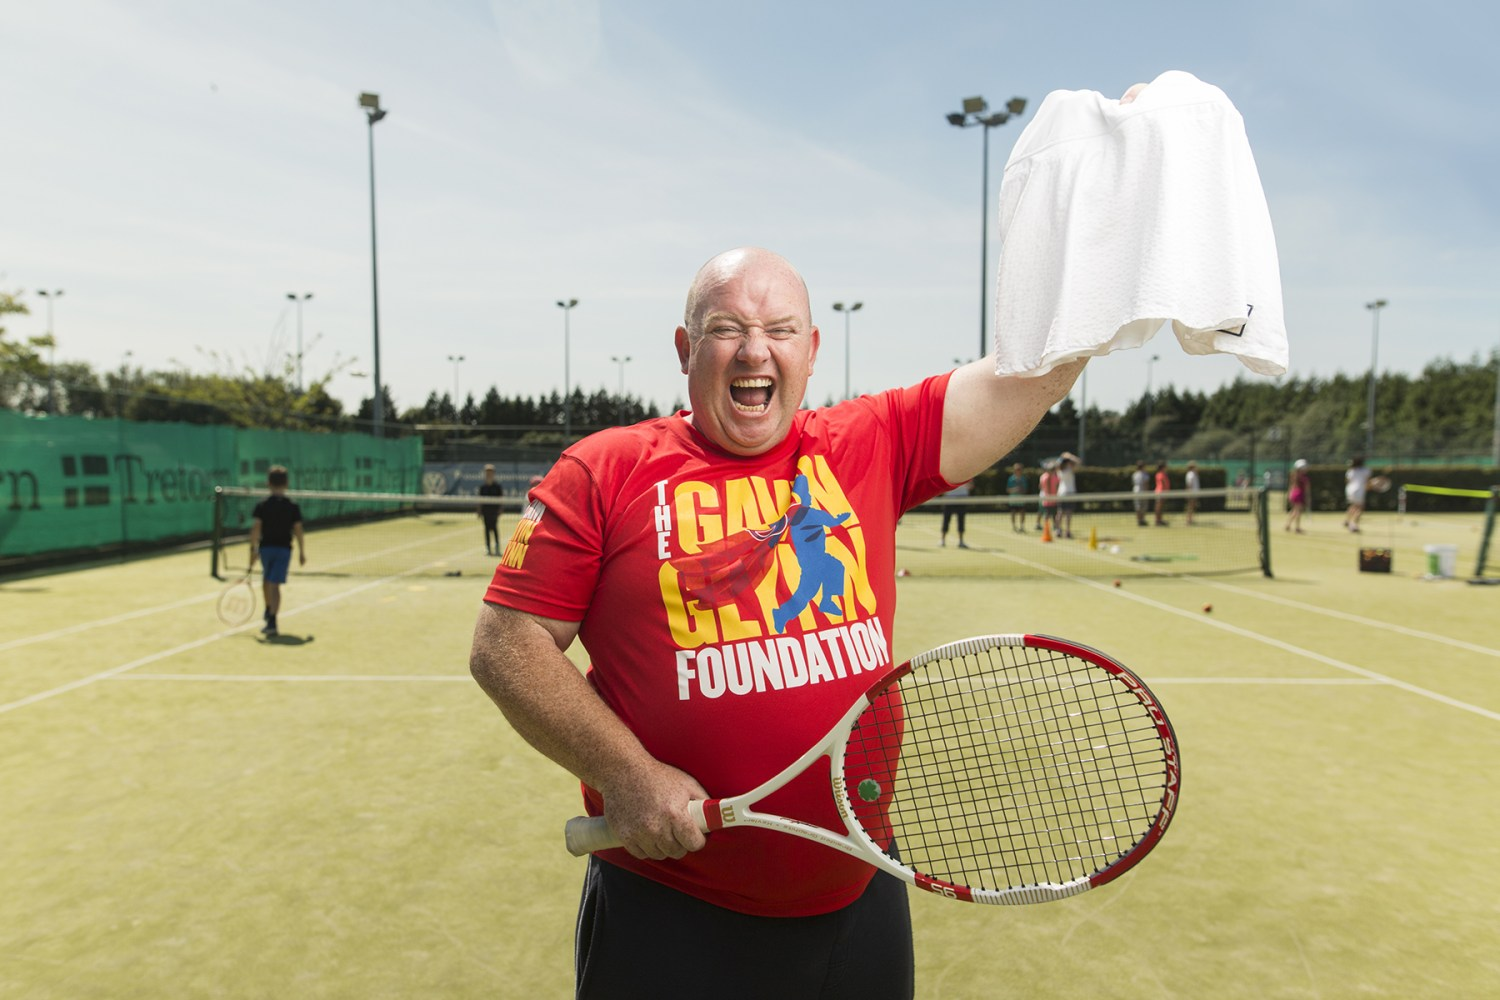 Viral Wimbledon heckler Chris Quinn and John Glynn of The Gavin Glynn Foundation pictured at Greystones Lawn Tennis Club. Quinn is set to auction off a white skirt from Wimbledon in aid of the local Greystones based charity, which helps sick Irish children who have to travel abroad for treatment. Visit thegavinglynnfoundation.ie/auction to bid!